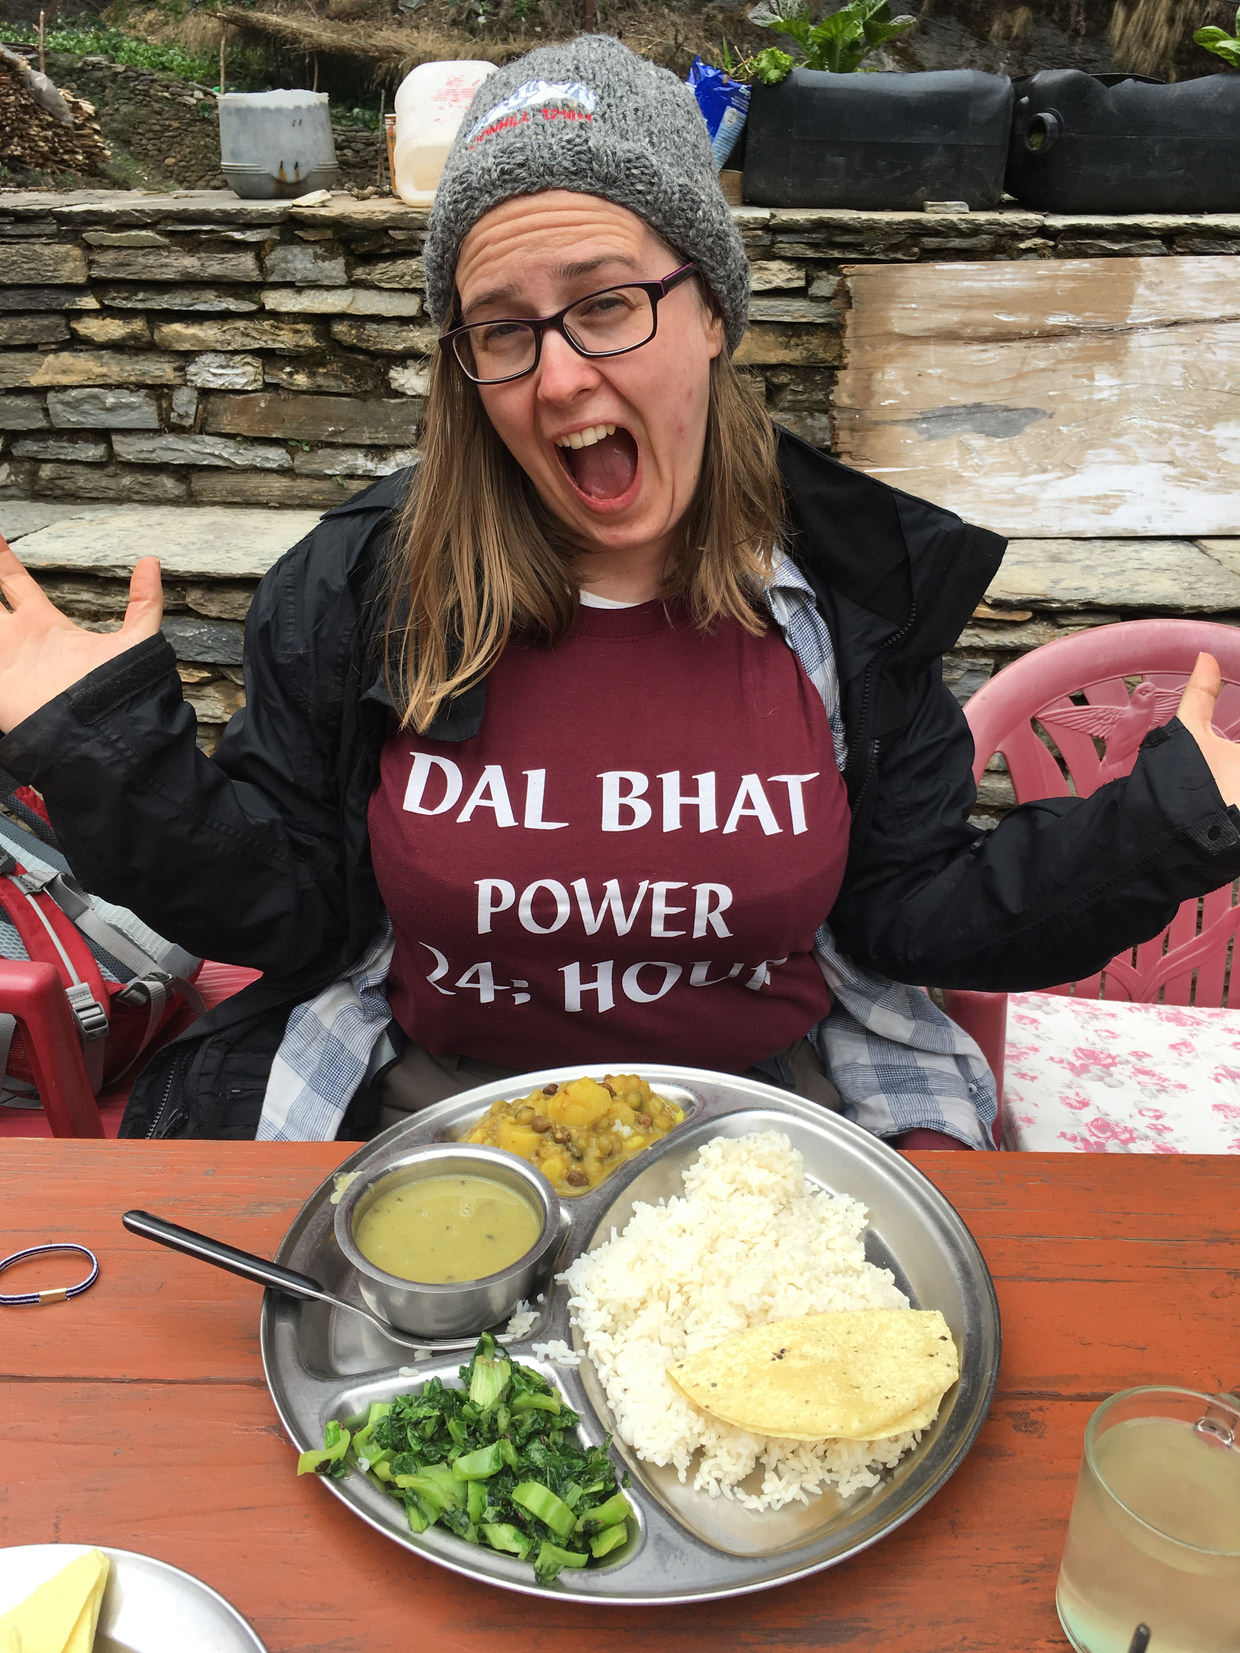 Samantha with her dal bhat